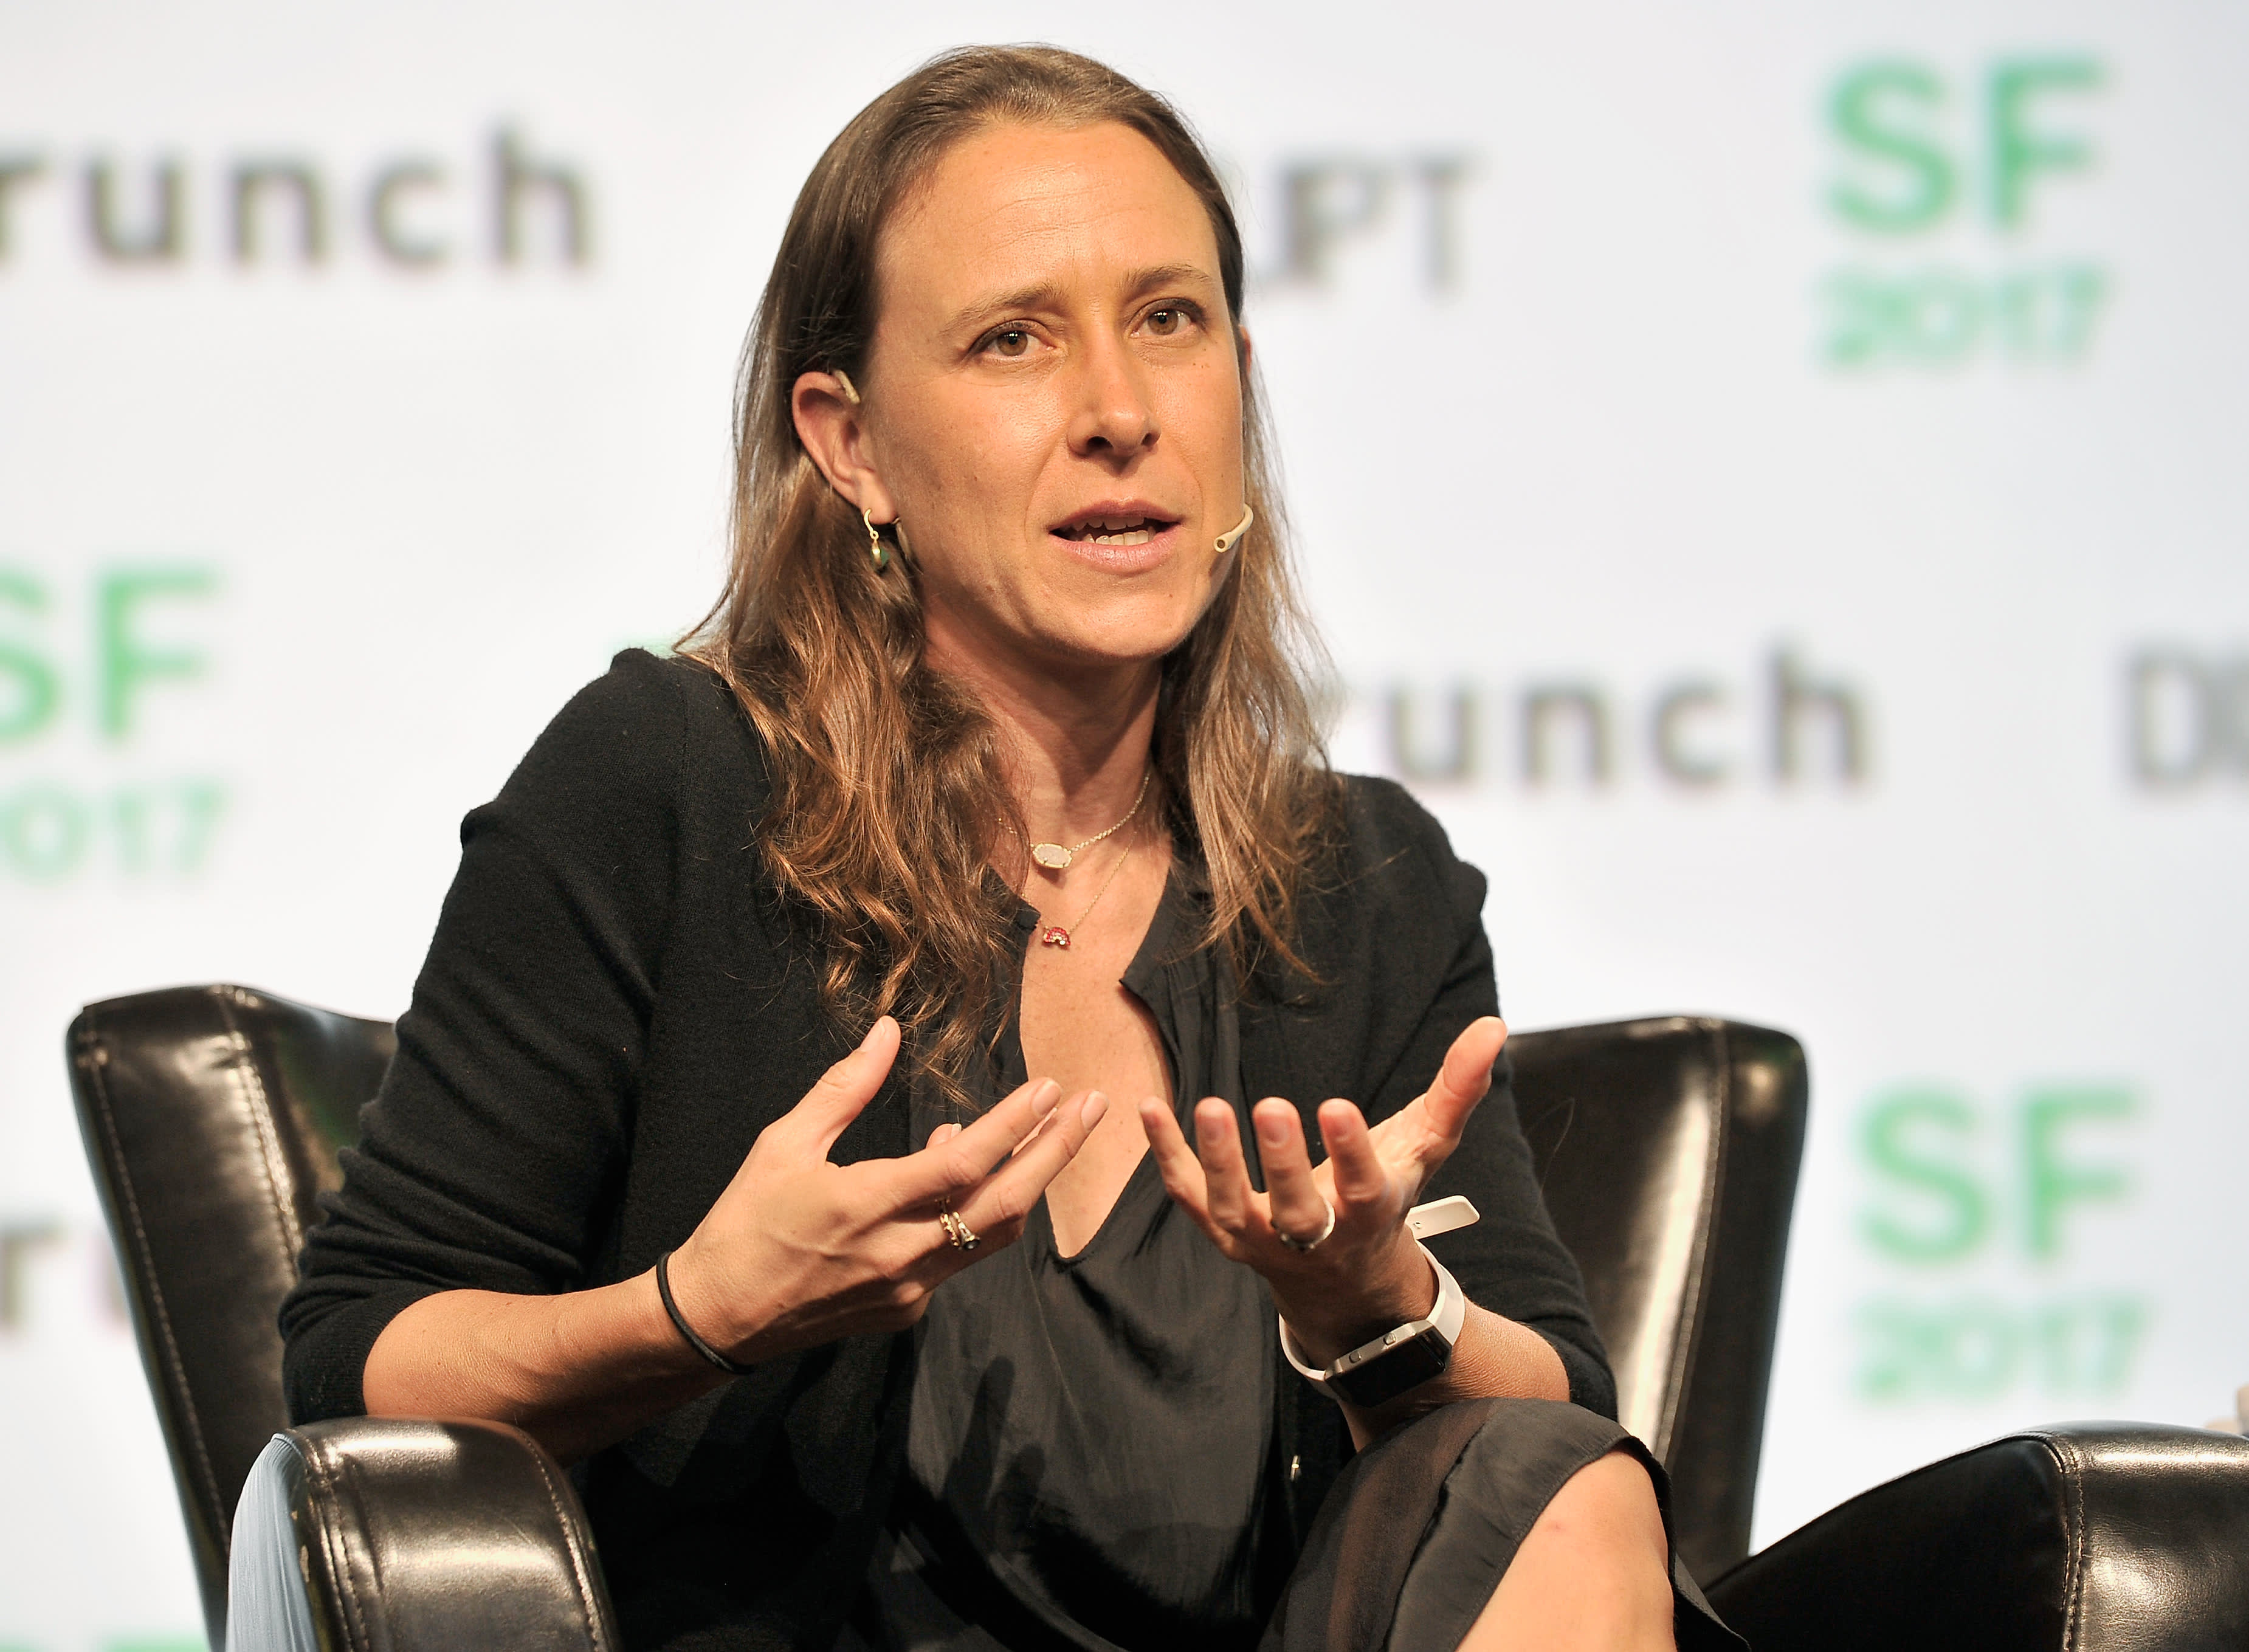 23andMe lays off 100 people as DNA test sales decline, CEO says she was 'surprised' to see market turn